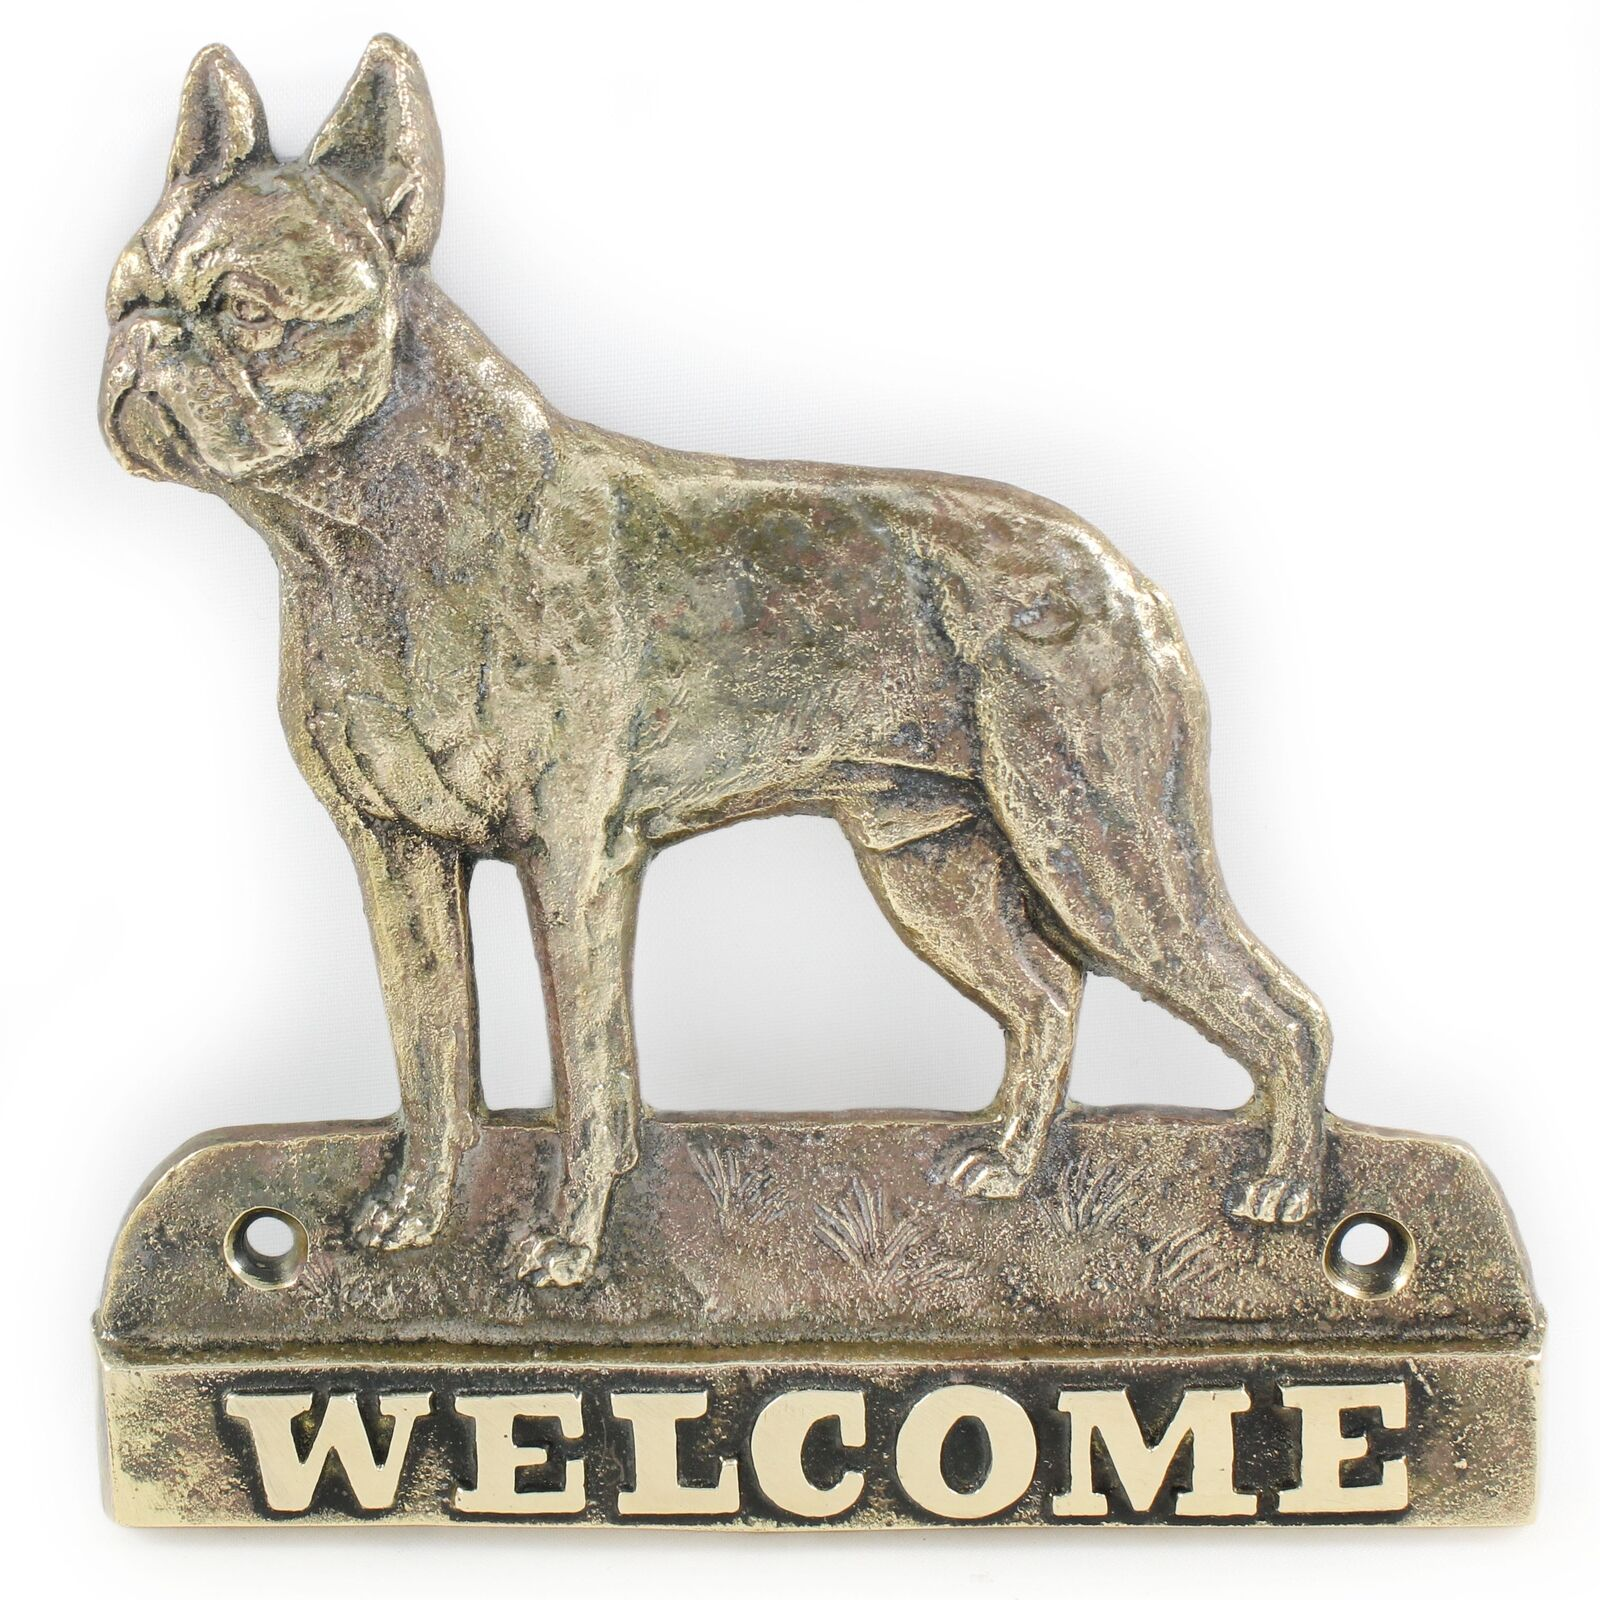 Boston Terrier - brass tablet with image of a dog, Art Dog